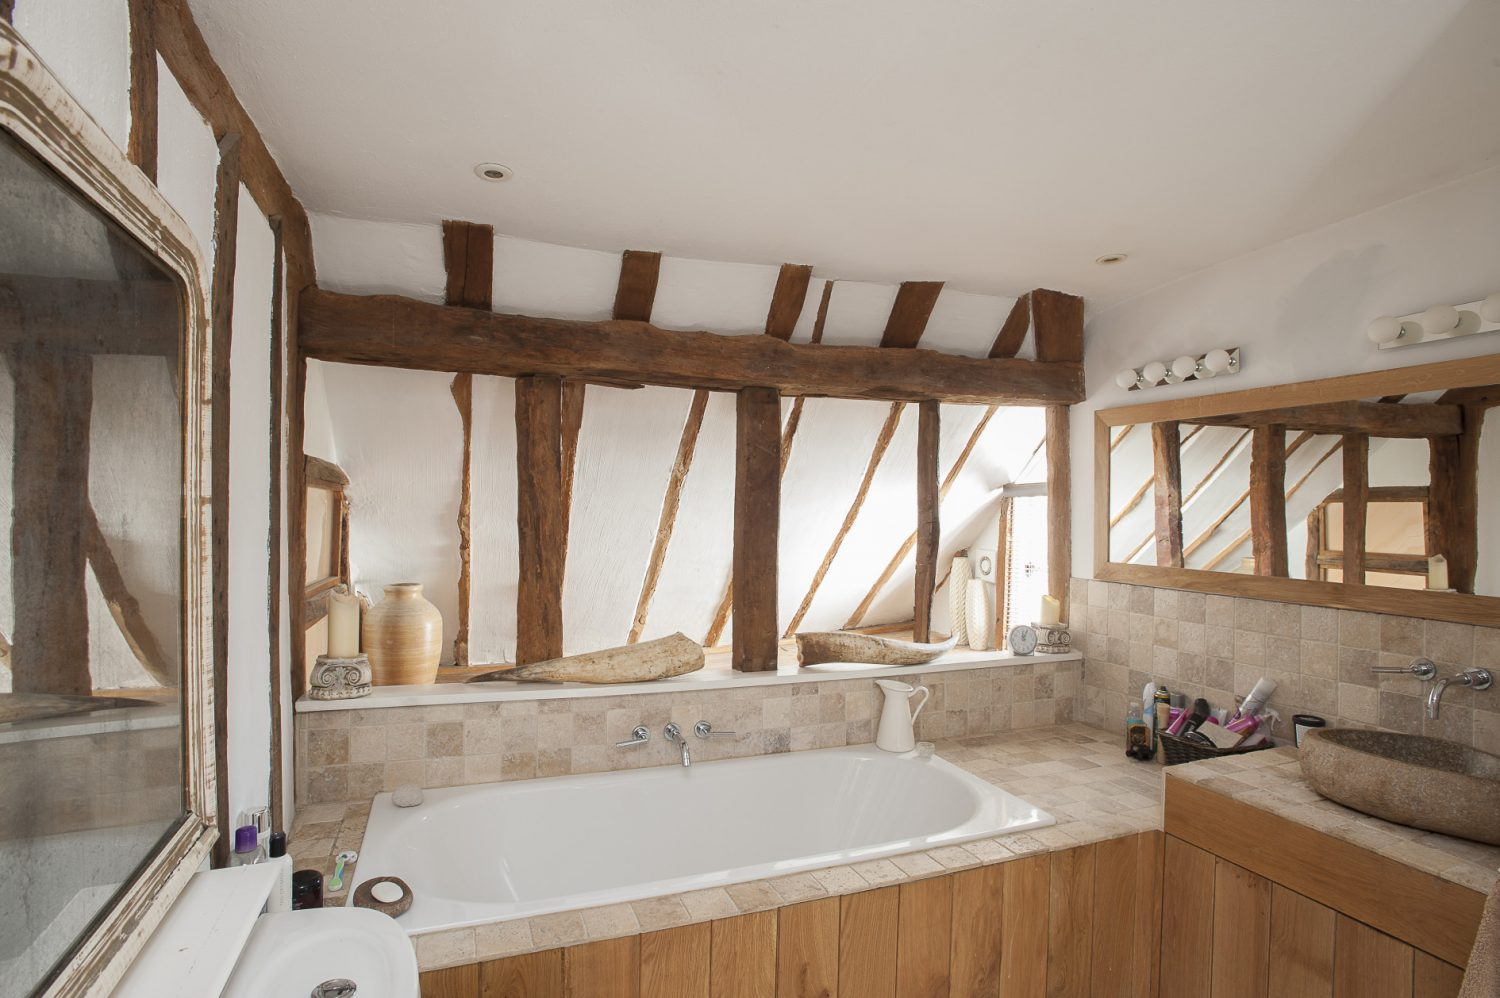 The family bathroom is a balance of contemporary and period – plenty of timbers and complementary woodwork but also items like a great Fired Earth hand basin carved from a single piece of stone